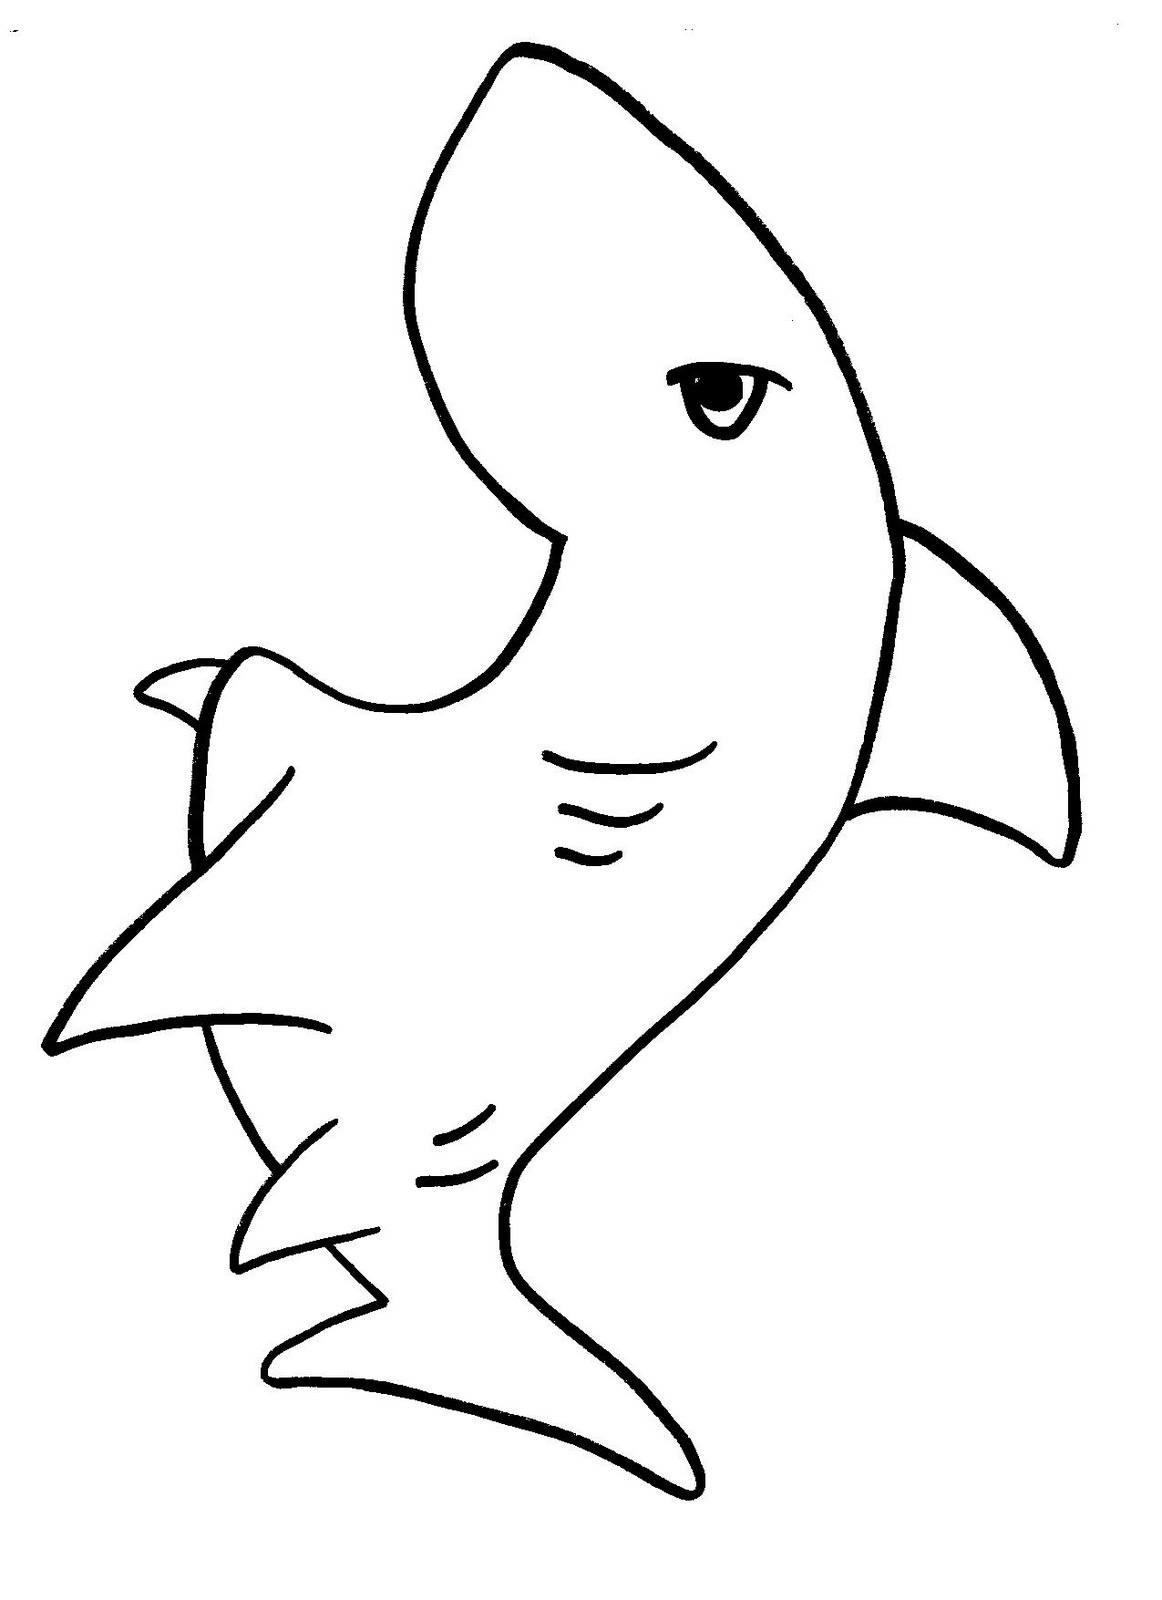 shark coloring pictures to print free shark coloring pages to pictures shark coloring print